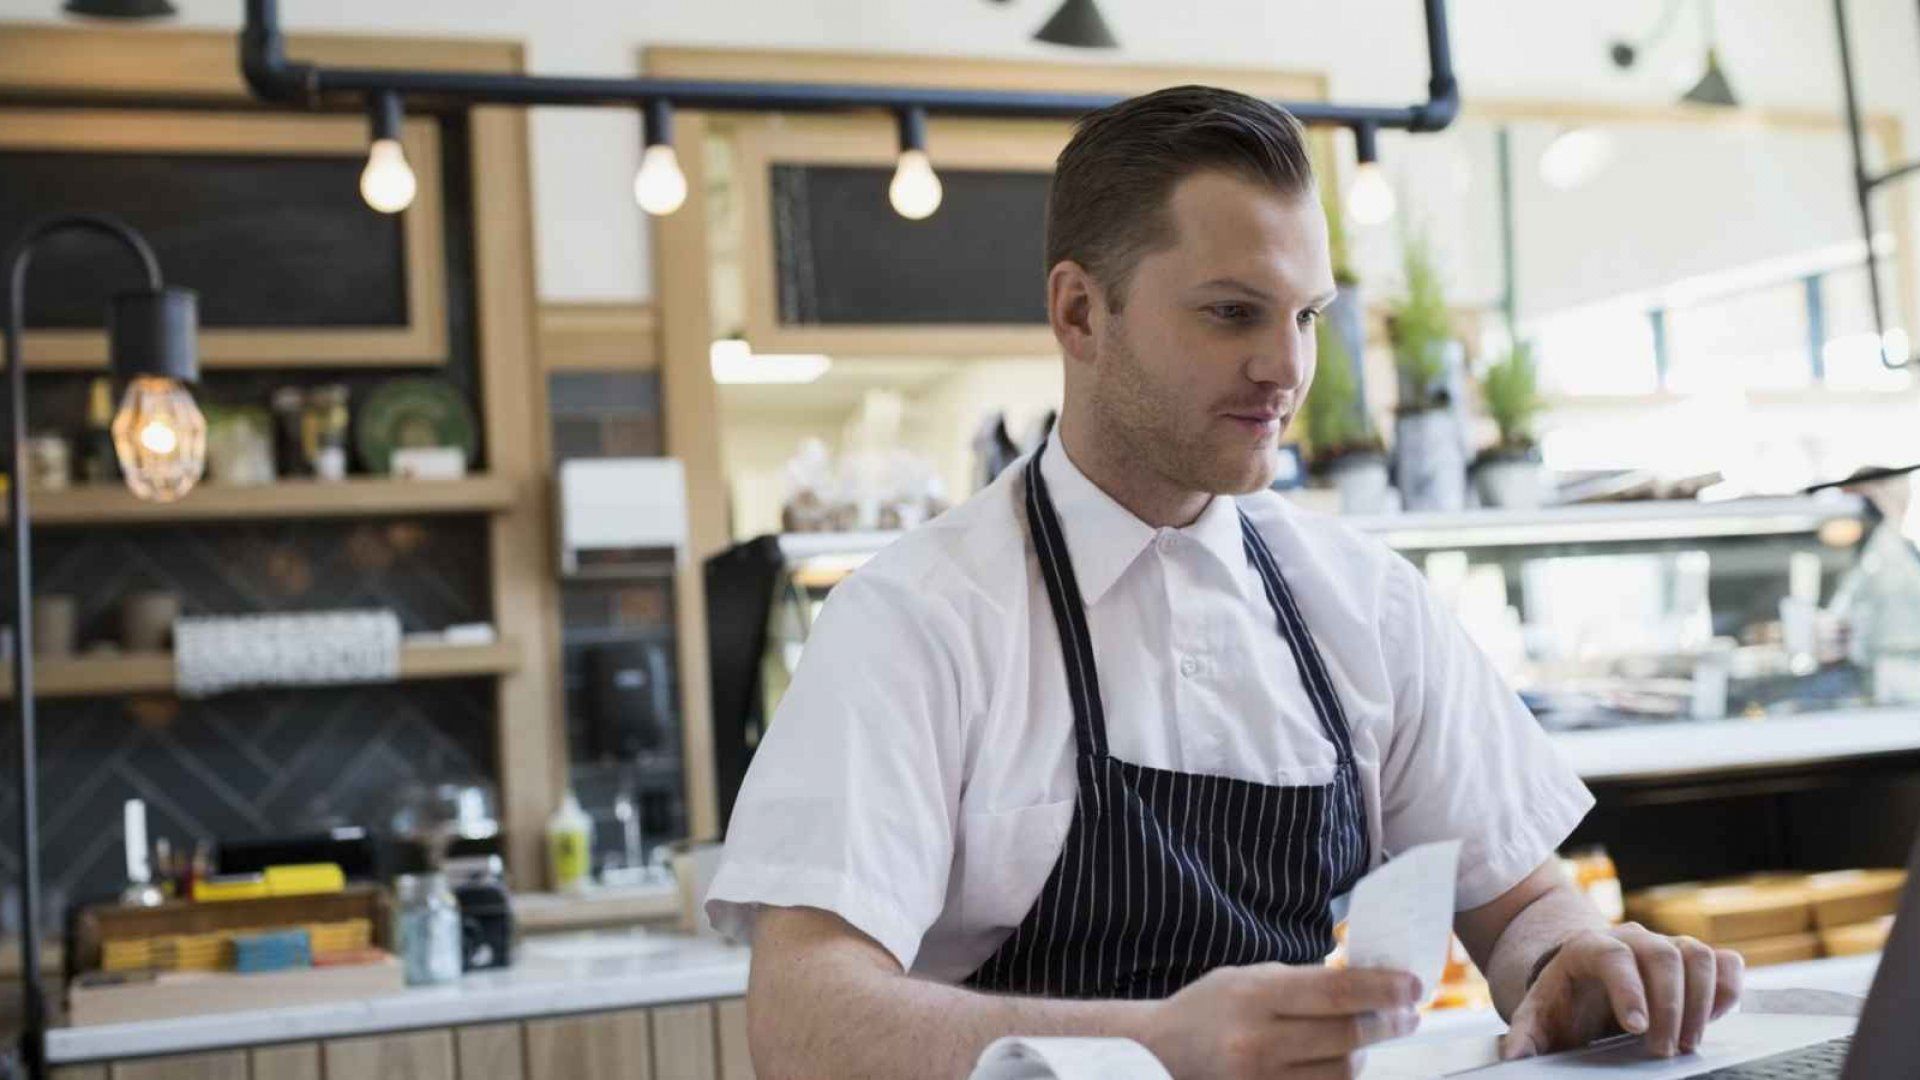 15 Online Tools for Small Business Owners to Be More Productive